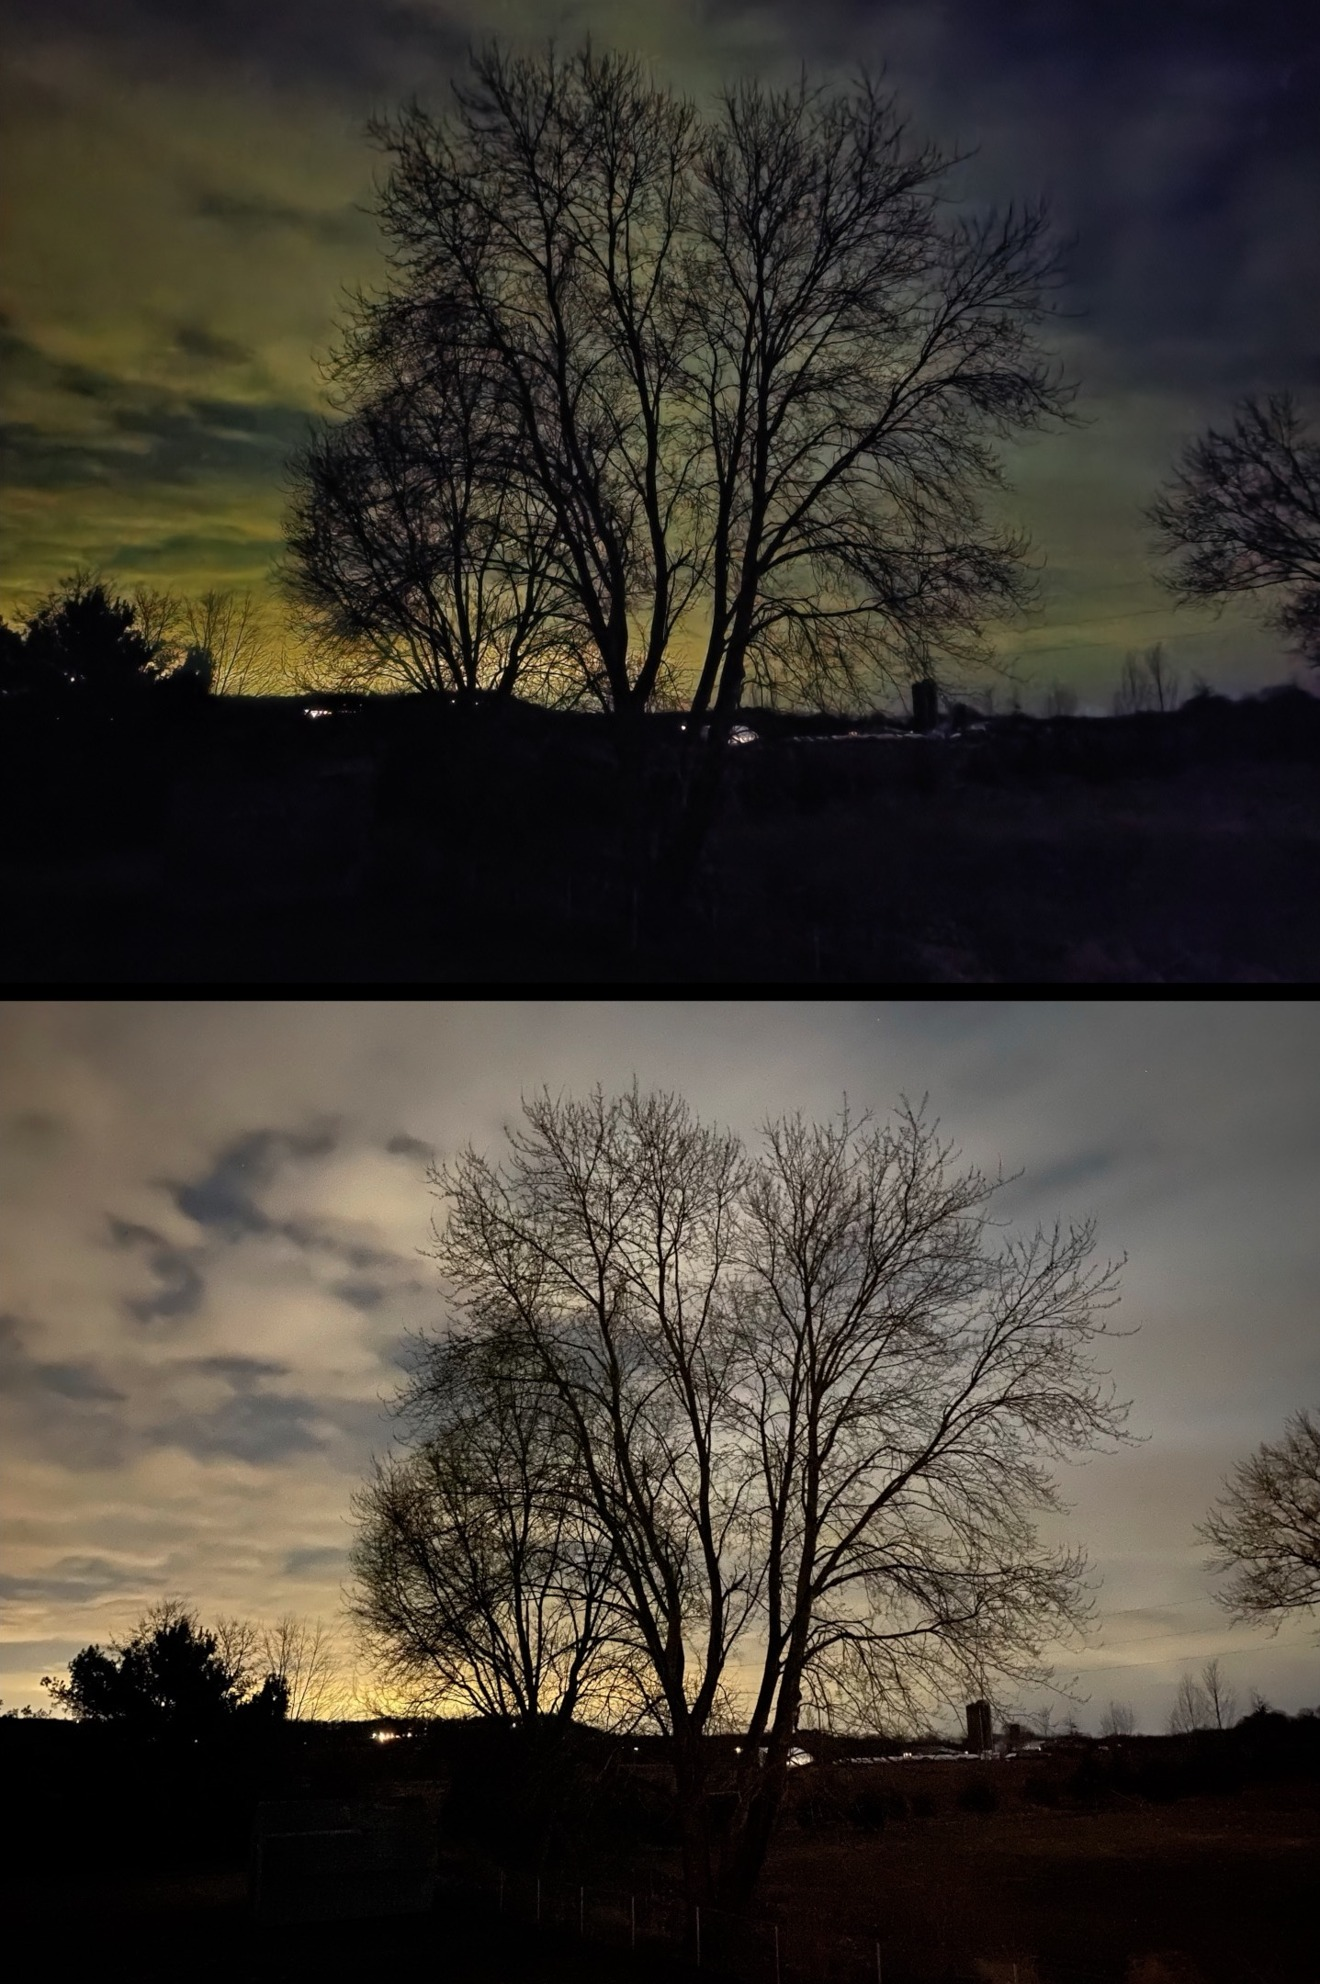 A handheld night shot on the Samsung Galaxy S20 Ultra (top) against the iPhone 11 Pro Max (bottom)